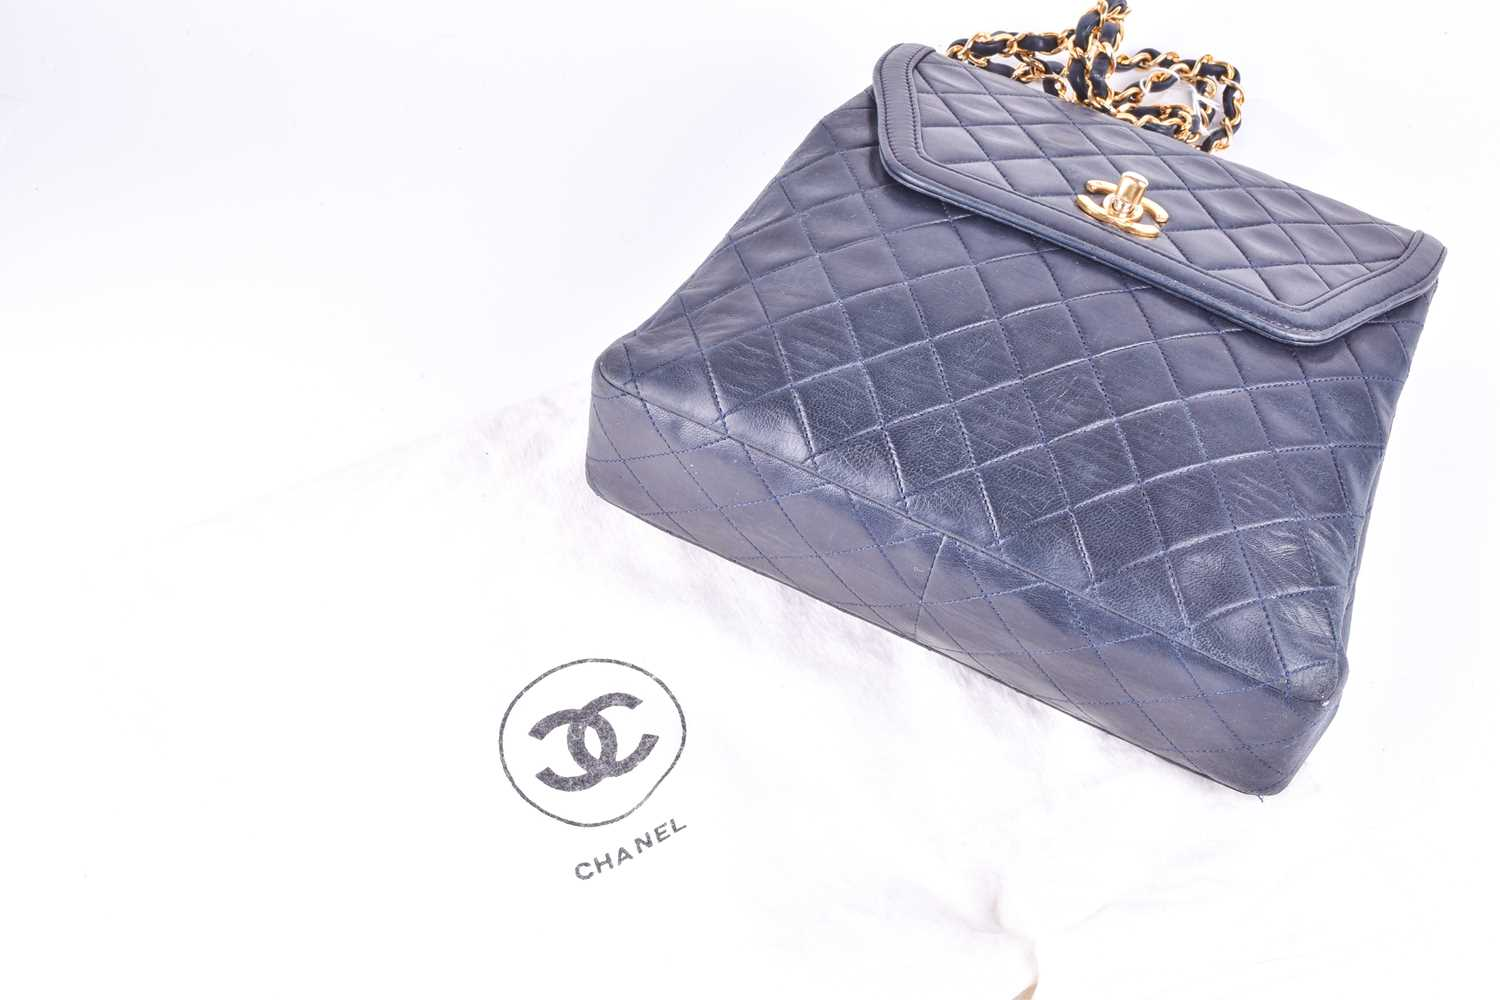 Chanel. A classic quilted leather handbag, of tapered square design, with gold tone CC logo clasp, - Image 10 of 26